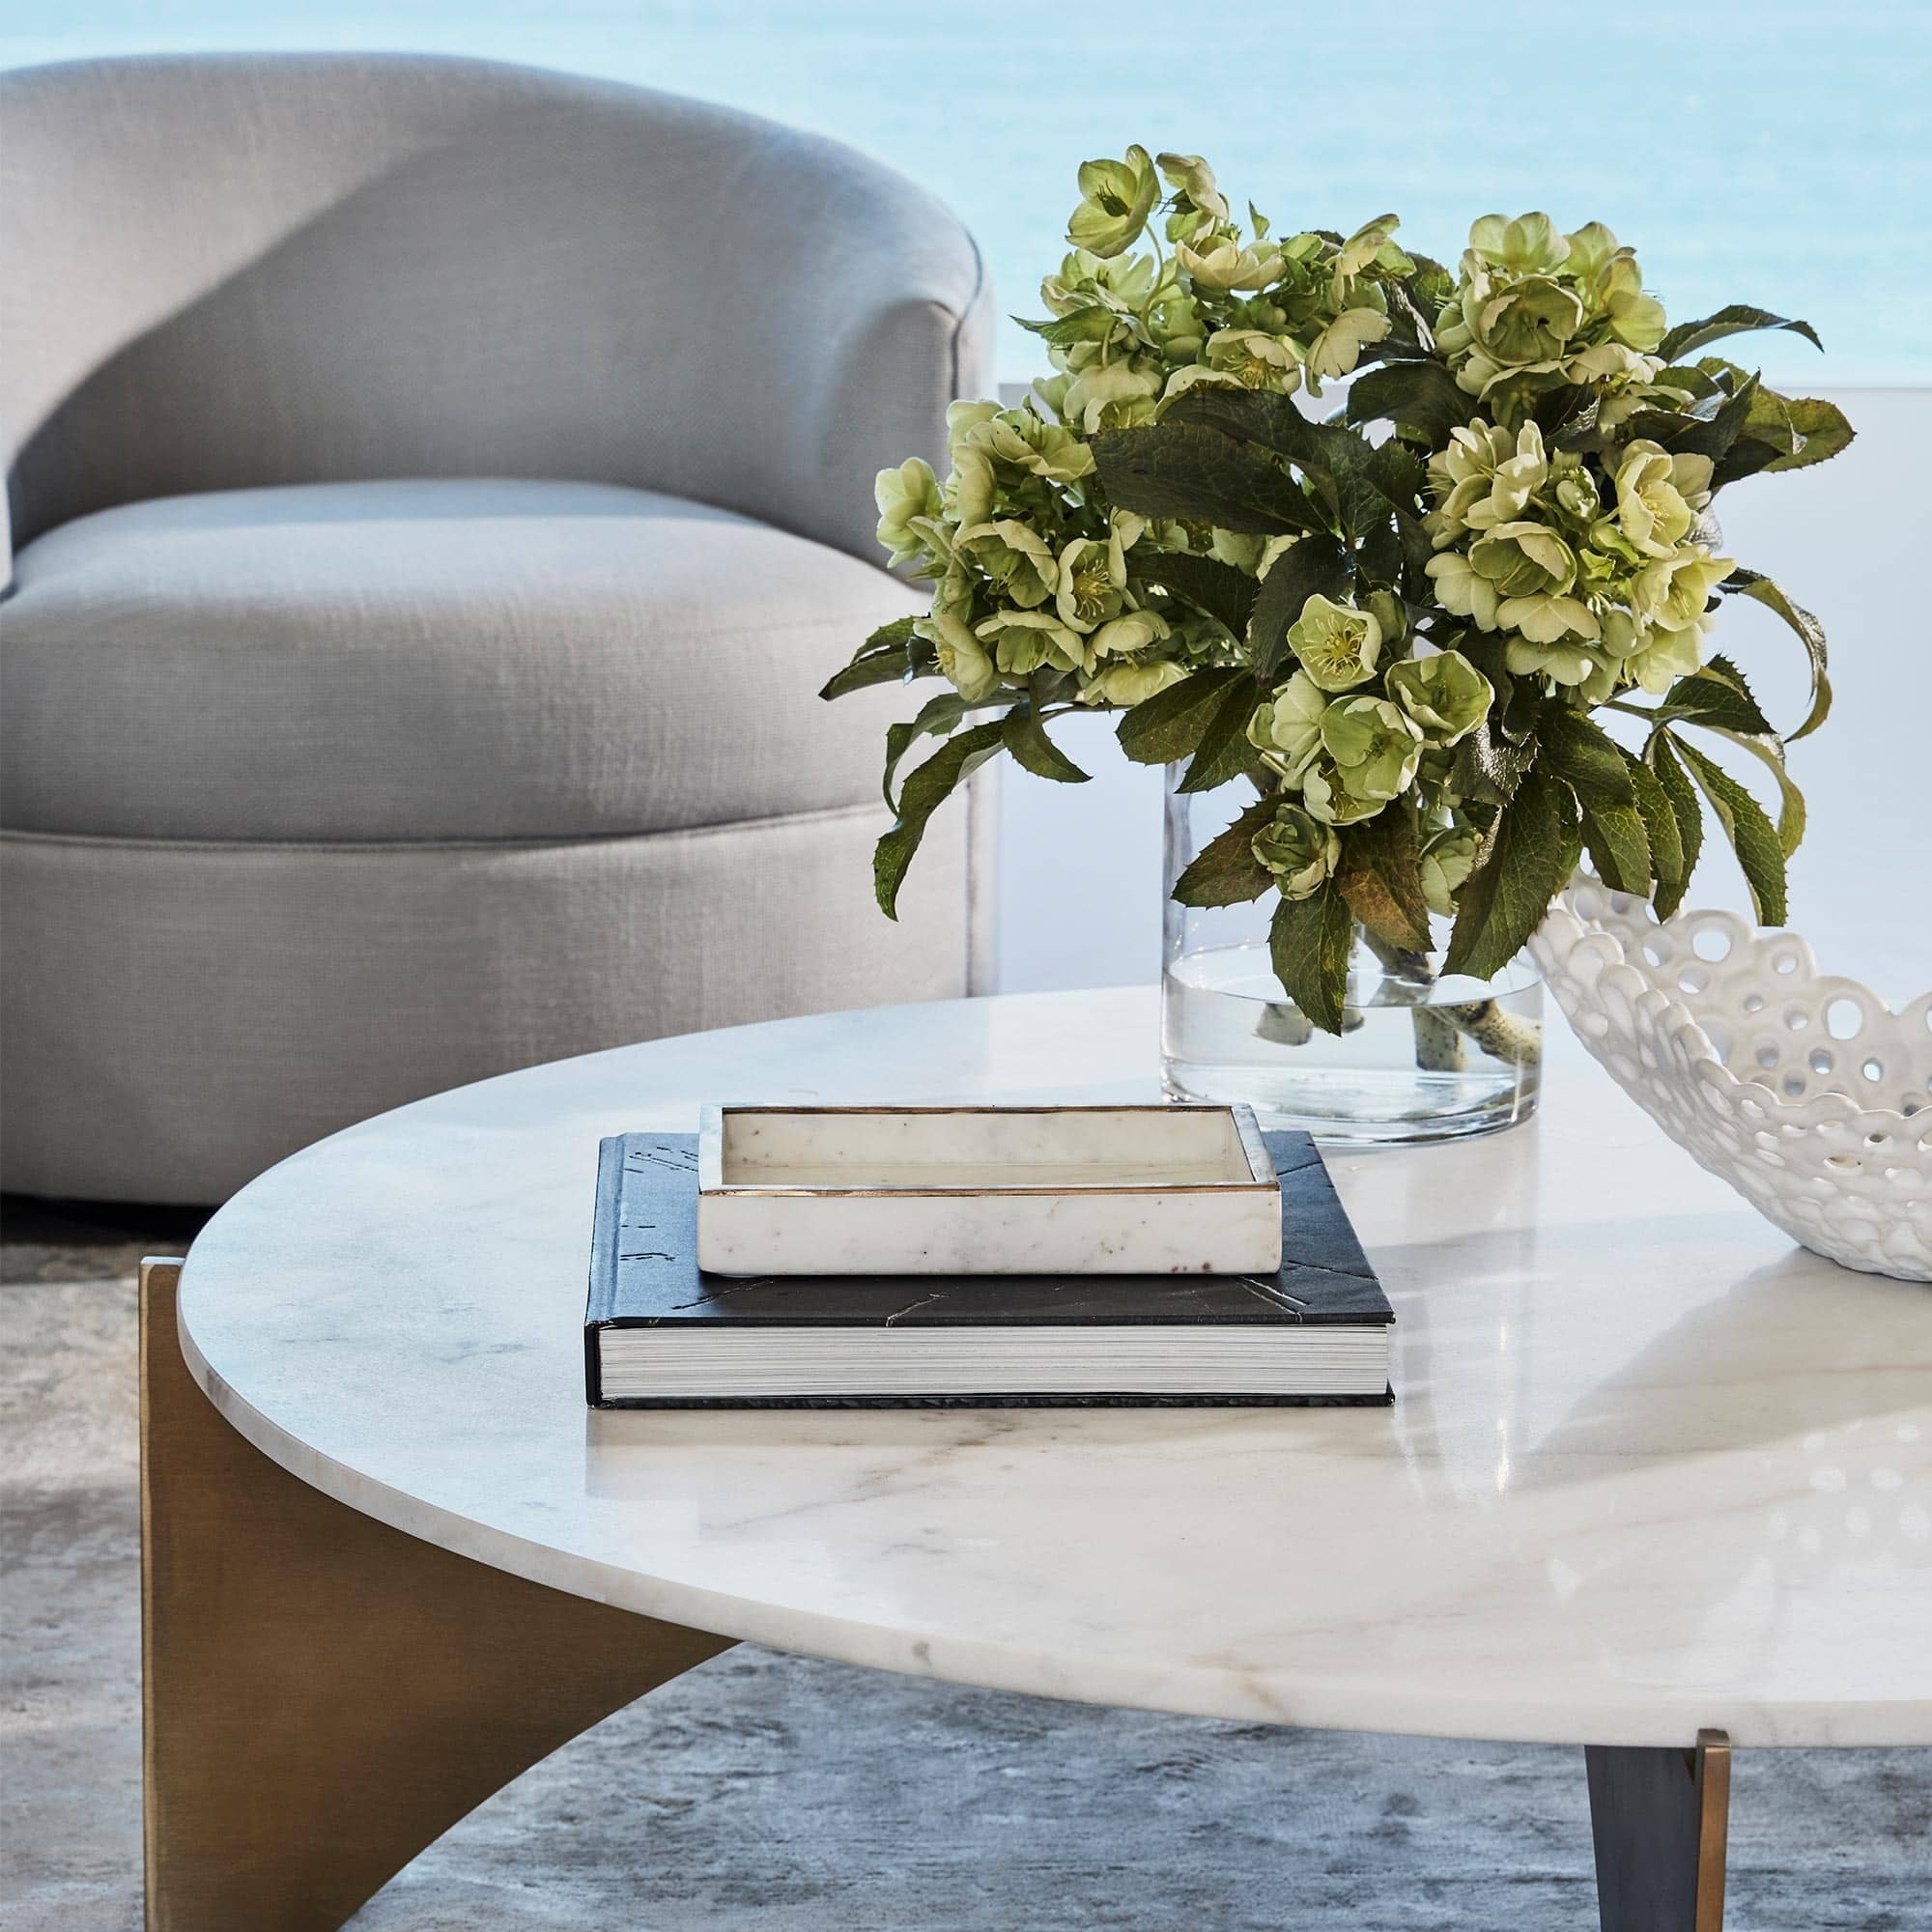 round marble coffee table with minimal coffee table styling flowers and books